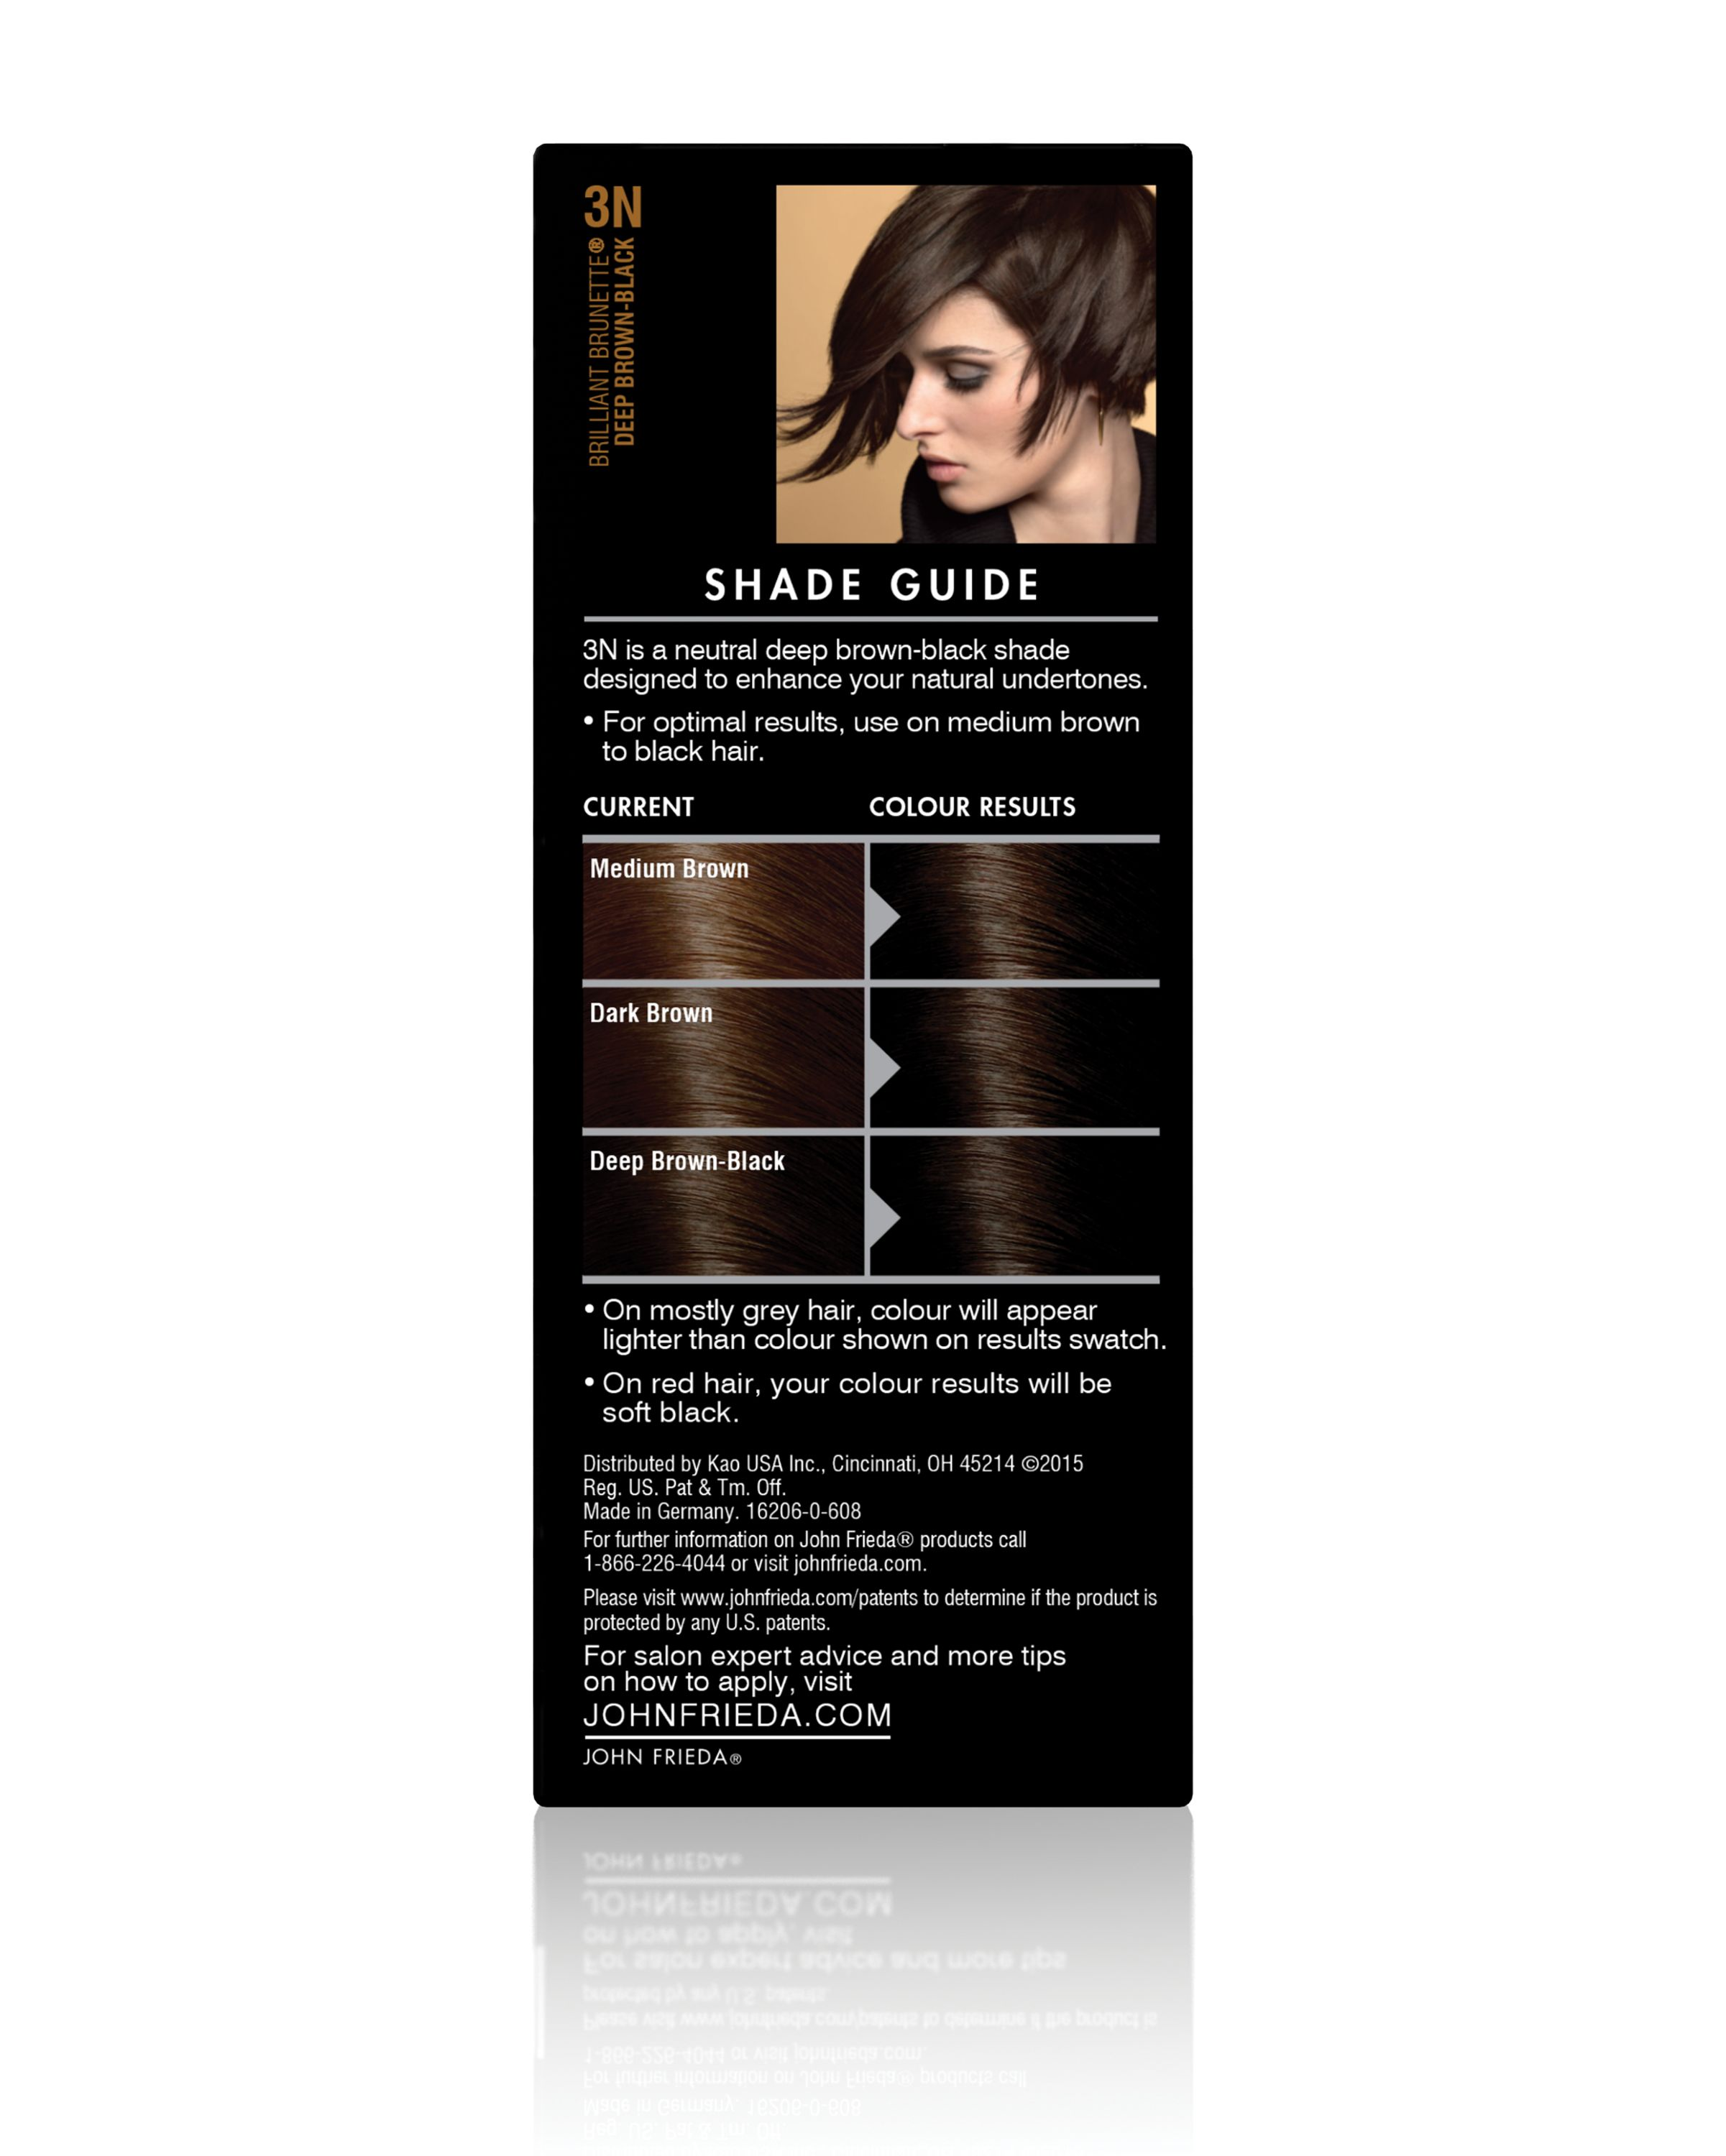 John Frieda Precision Foam Colour, Deep Brown Black 3N, 1apprication